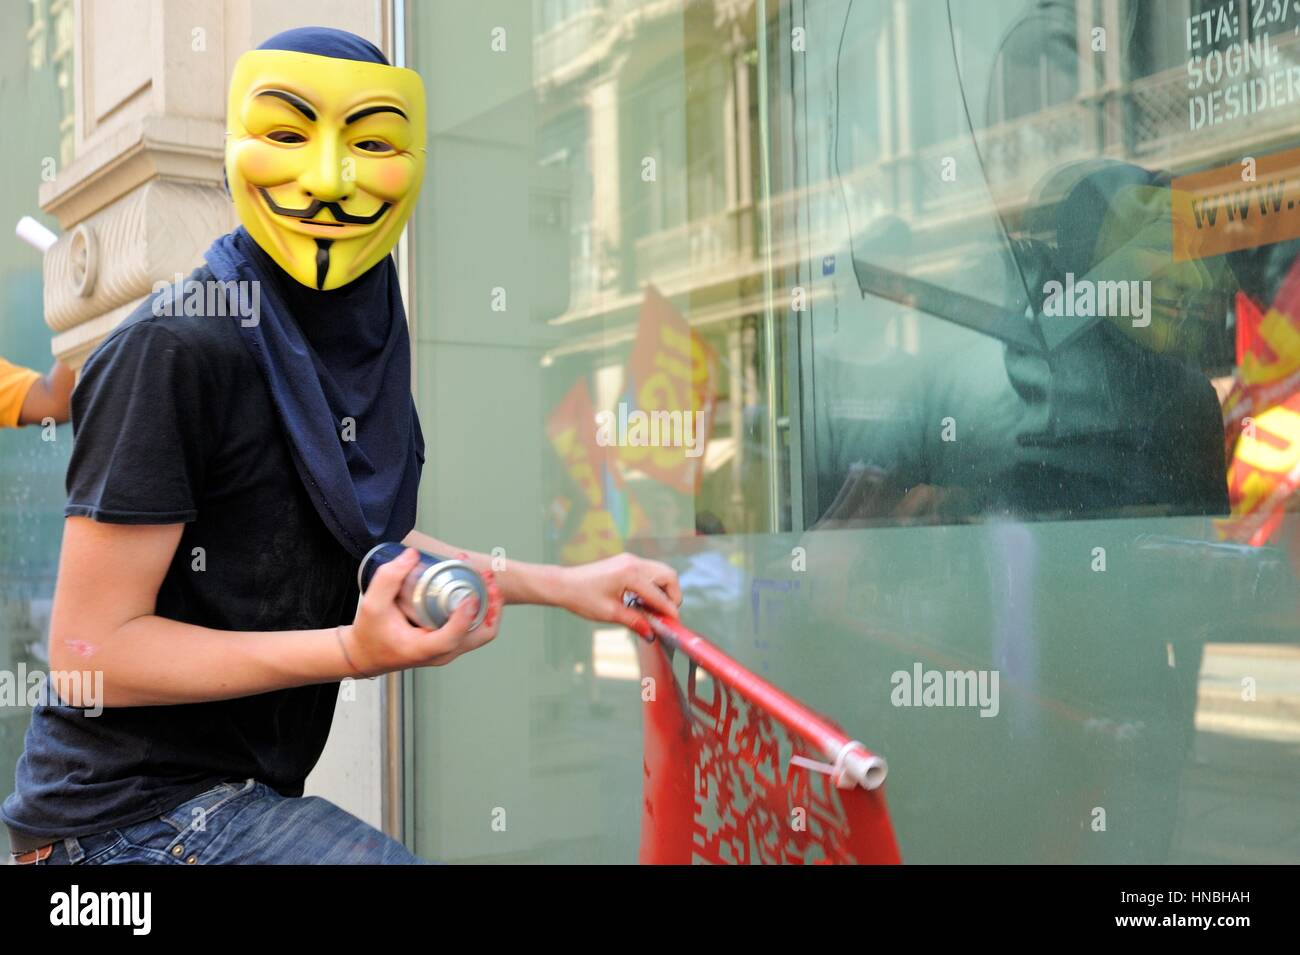 anonymous protester at against austerity demostration - Stock Image